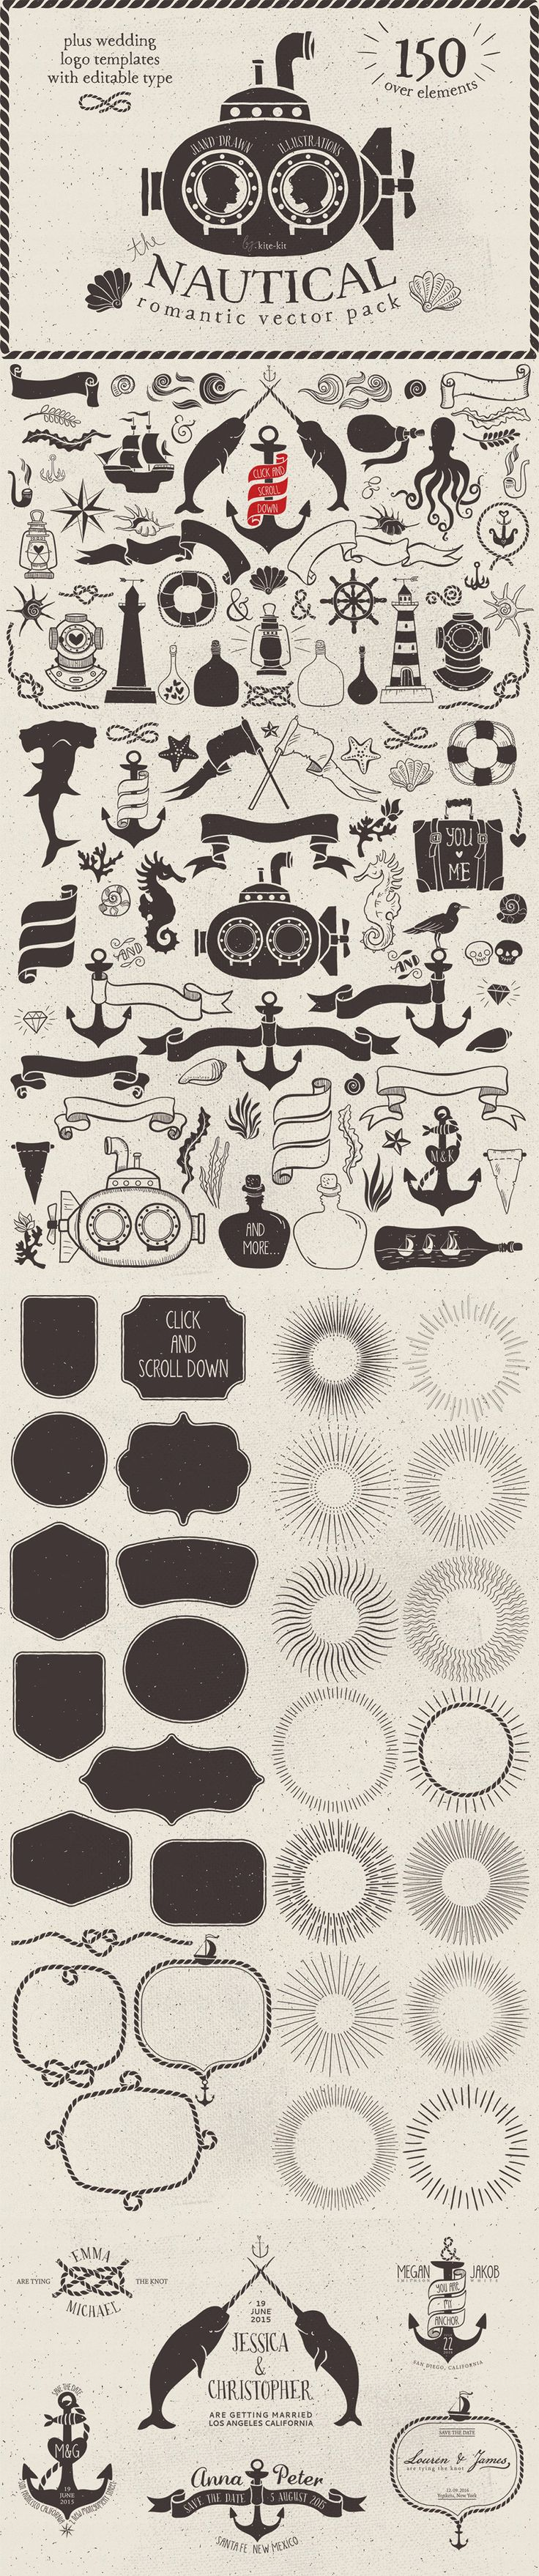 Nautical Romantic Vector Pack by Kite Kit | The Comprehensive, Creative Vectors Bundle Mar 2015 from Design Cuts